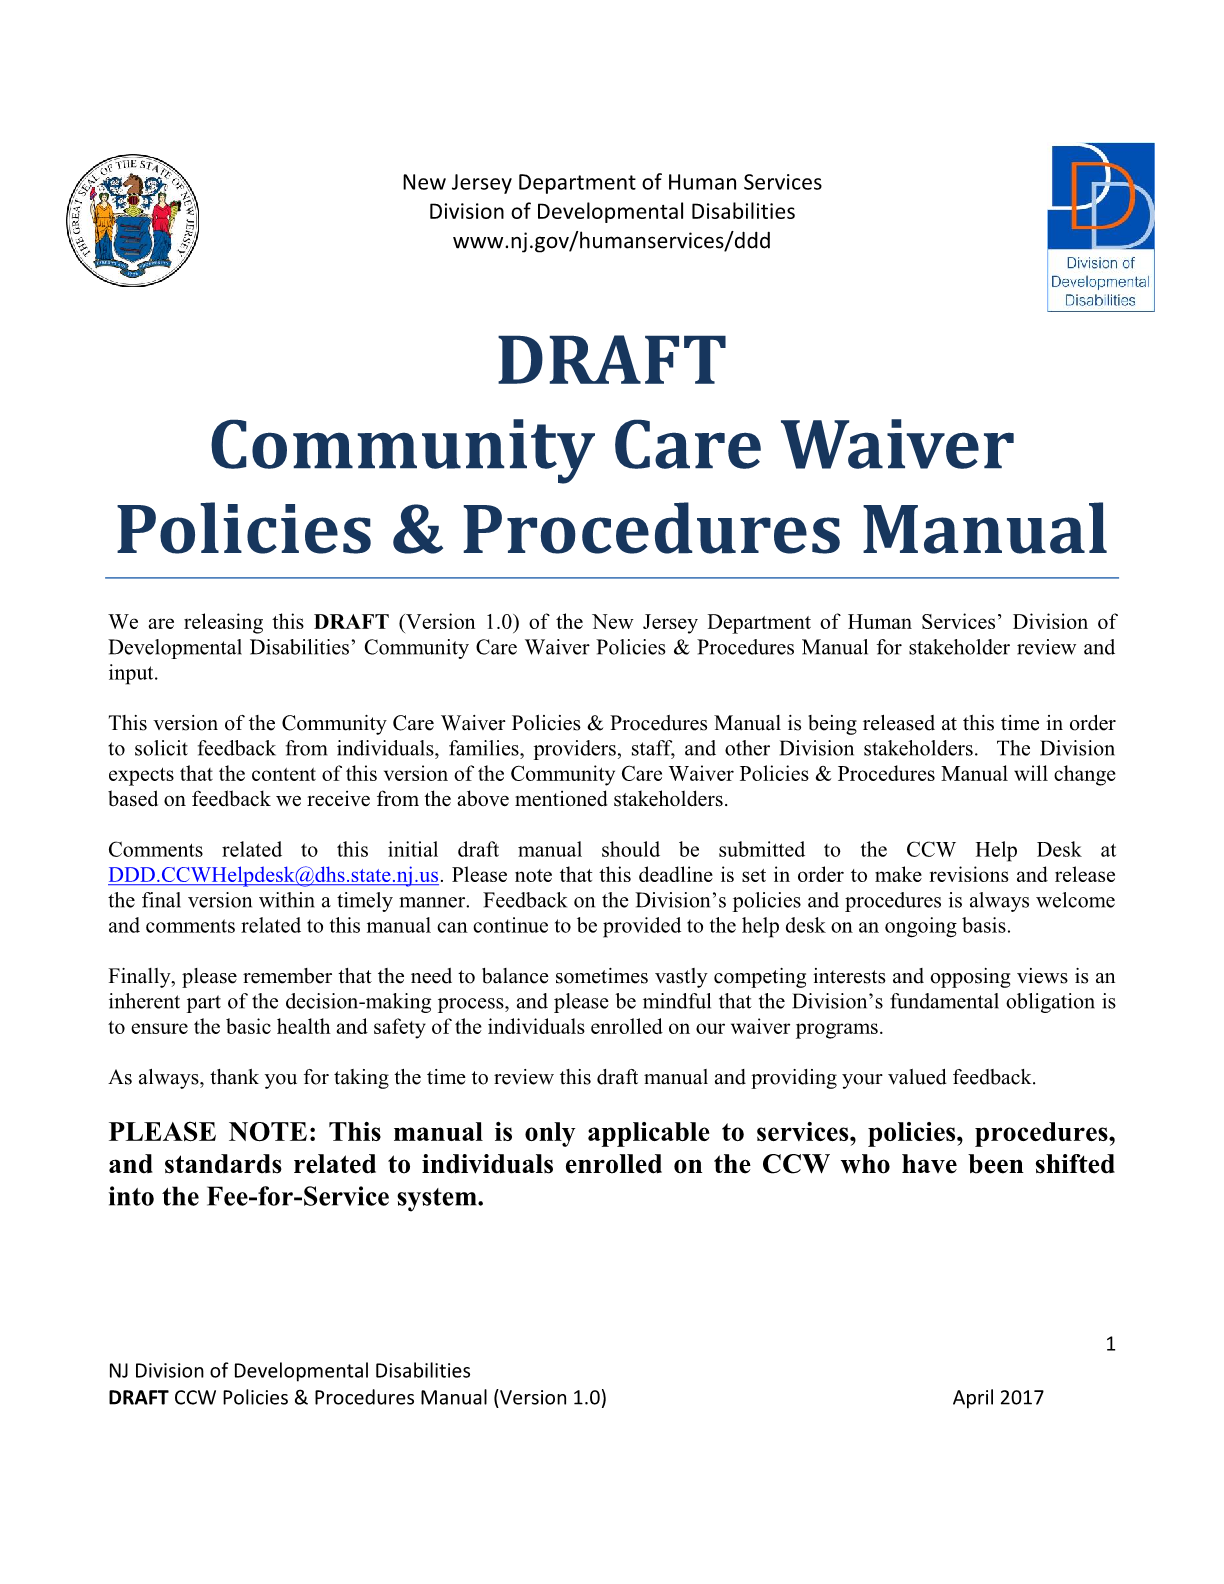 Community Care Waiver (CCW) Policies and Procedures Manual